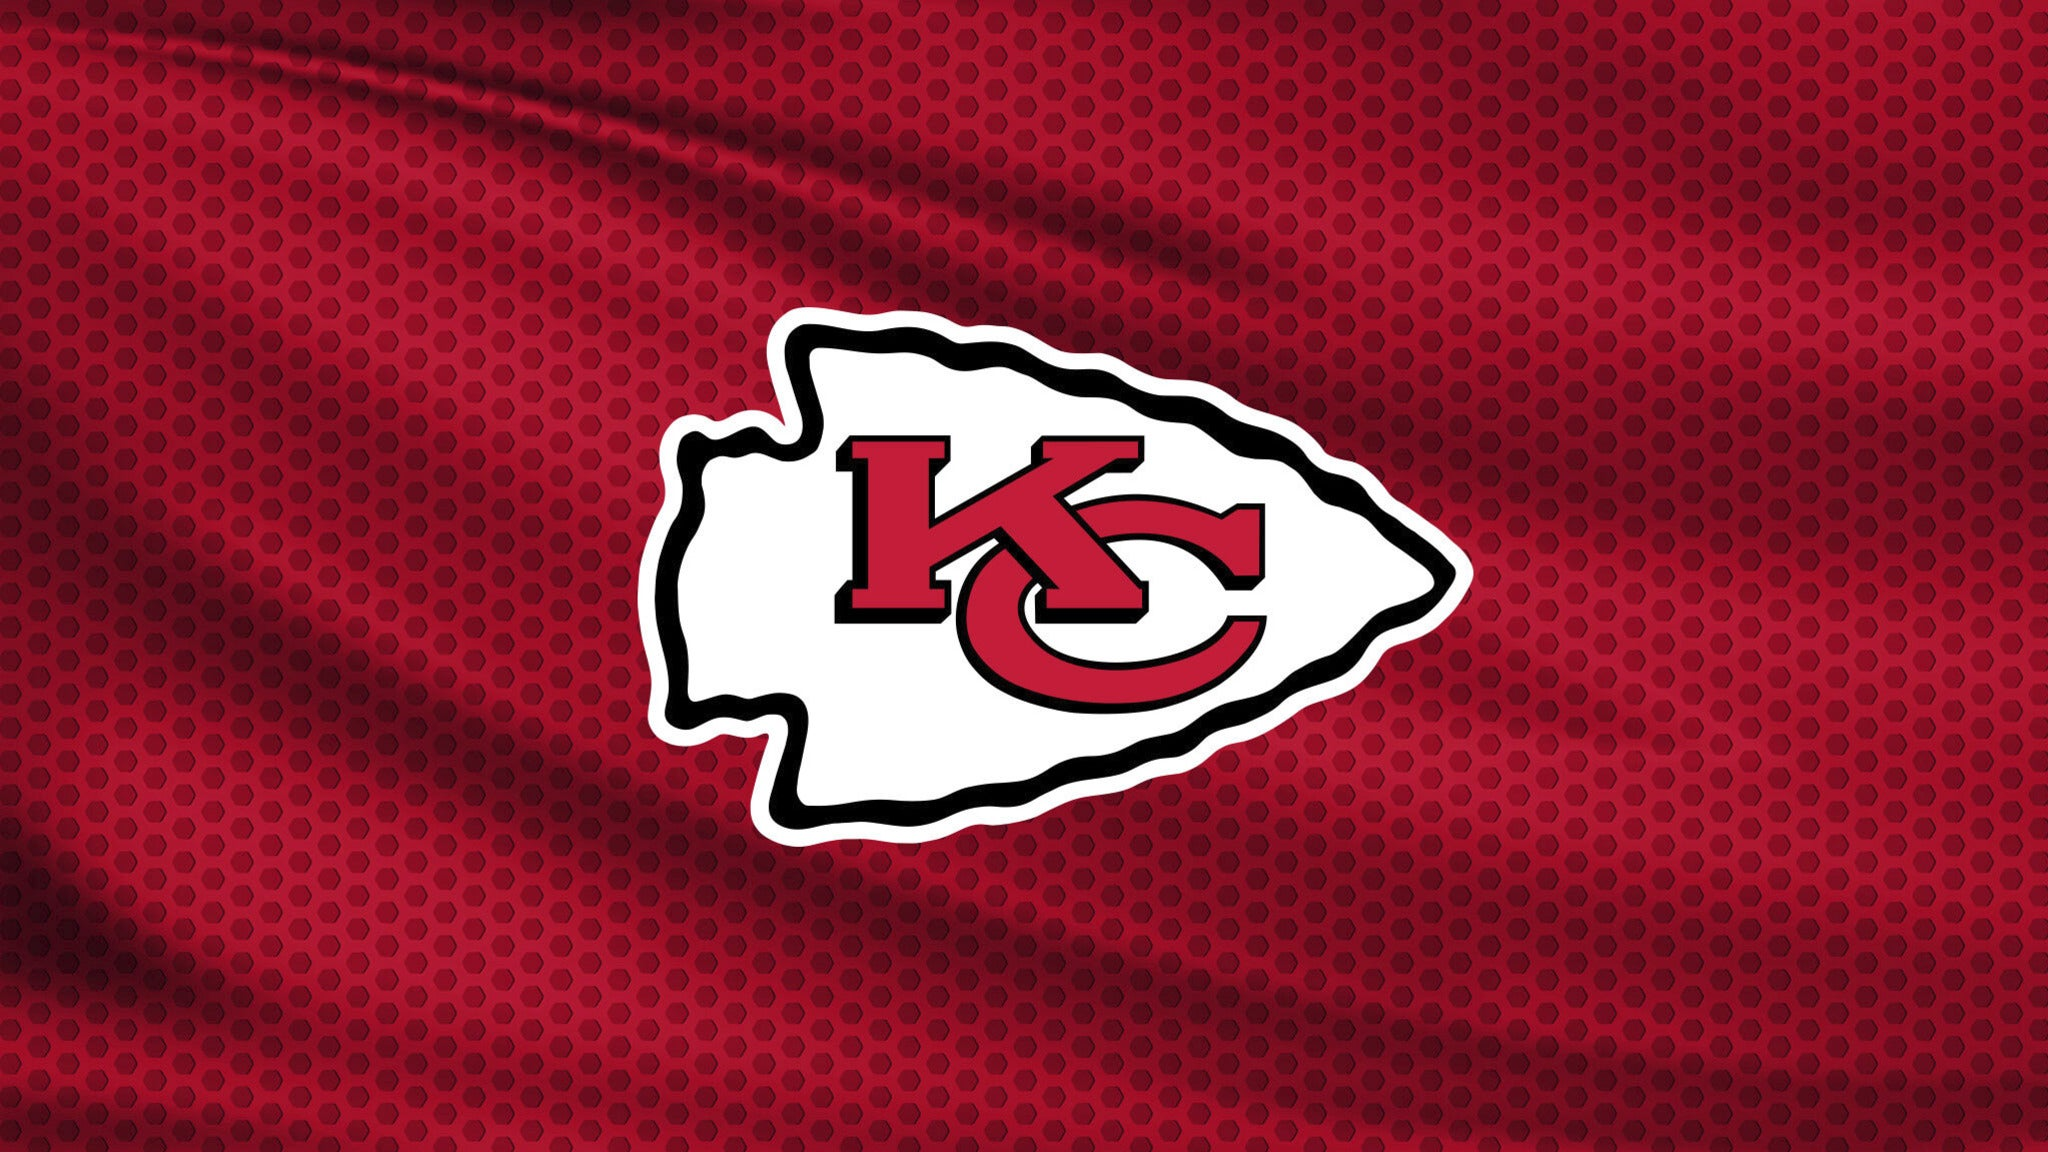 Kansas City Chiefs vs. Los Angeles Chargers - Kansas City, MO 64129